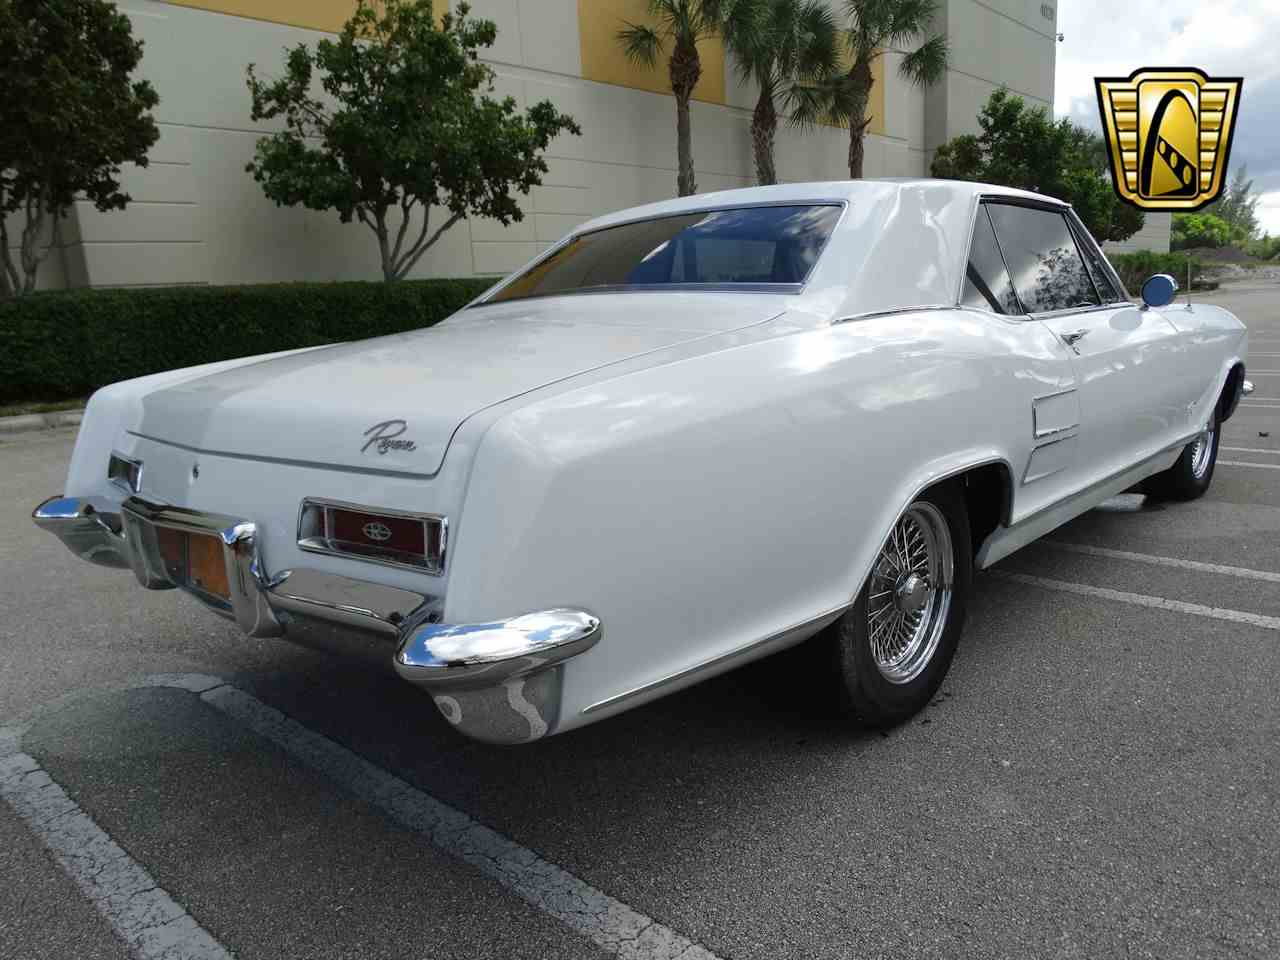 Large Picture of Classic '64 Buick Riviera - $22,595.00 Offered by Gateway Classic Cars - Fort Lauderdale - LUJQ